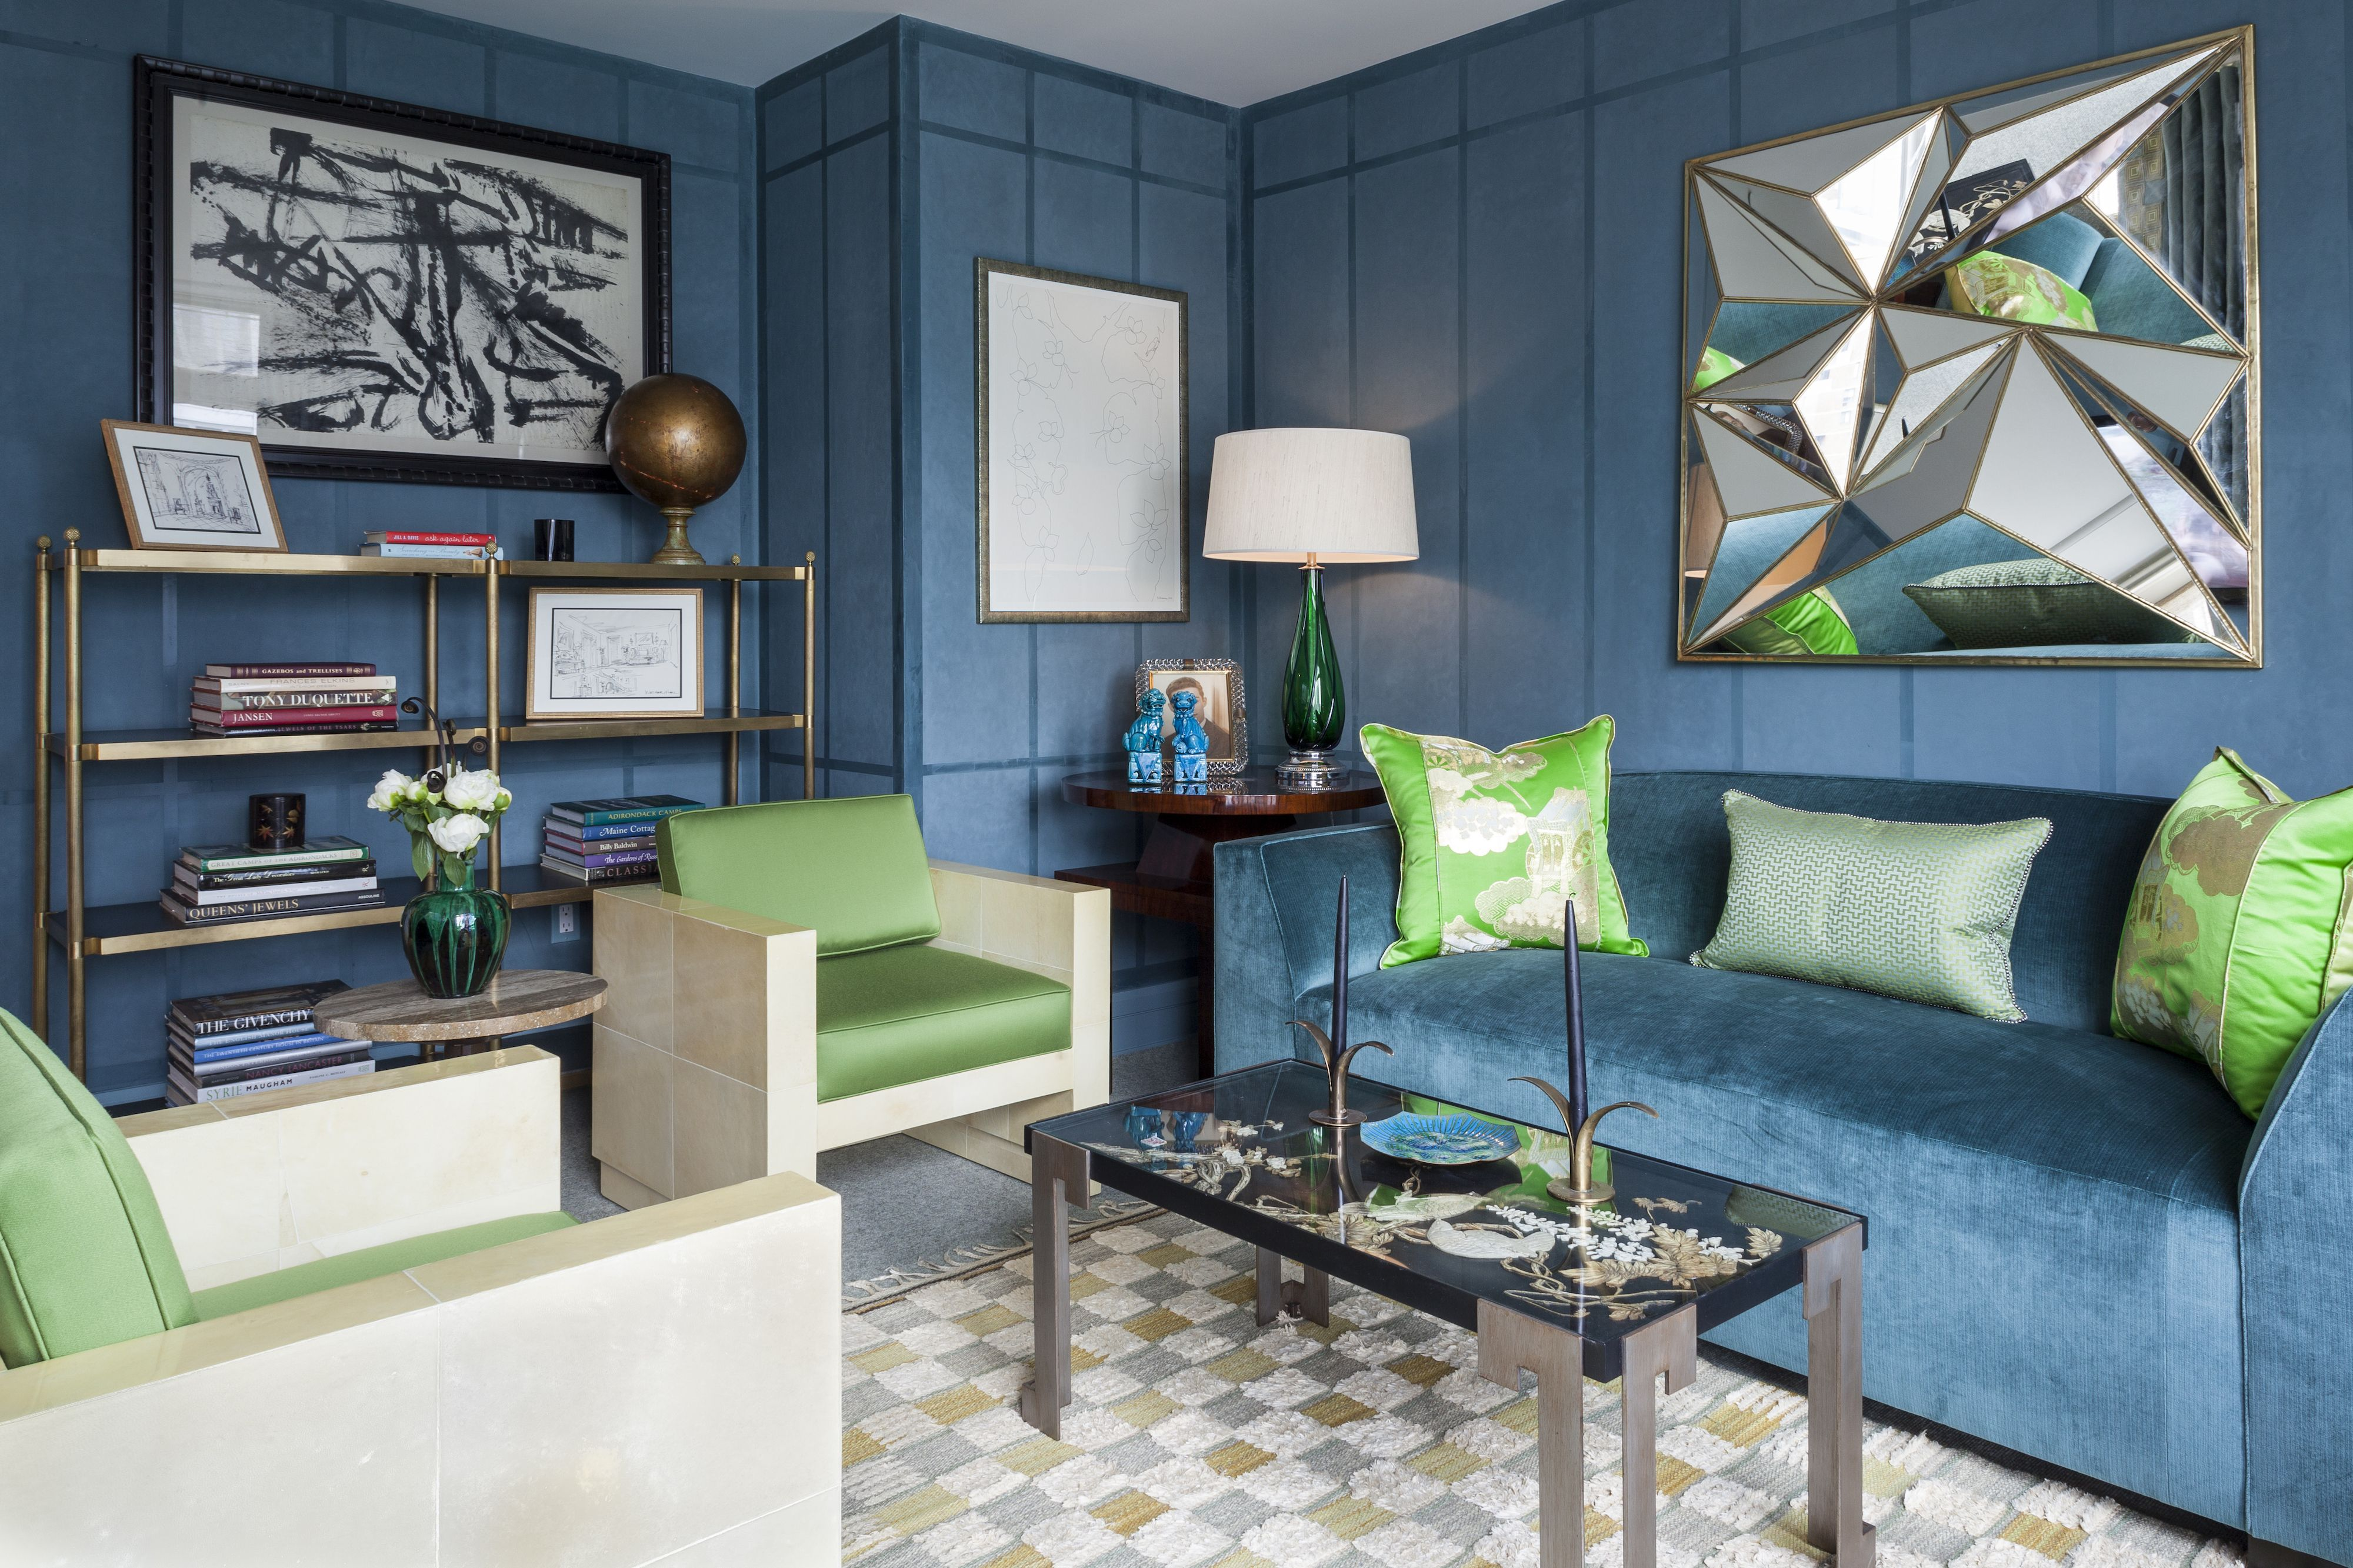 30 Room Colors For A Vibrant Home   Paint Colors For Bright Interior Design